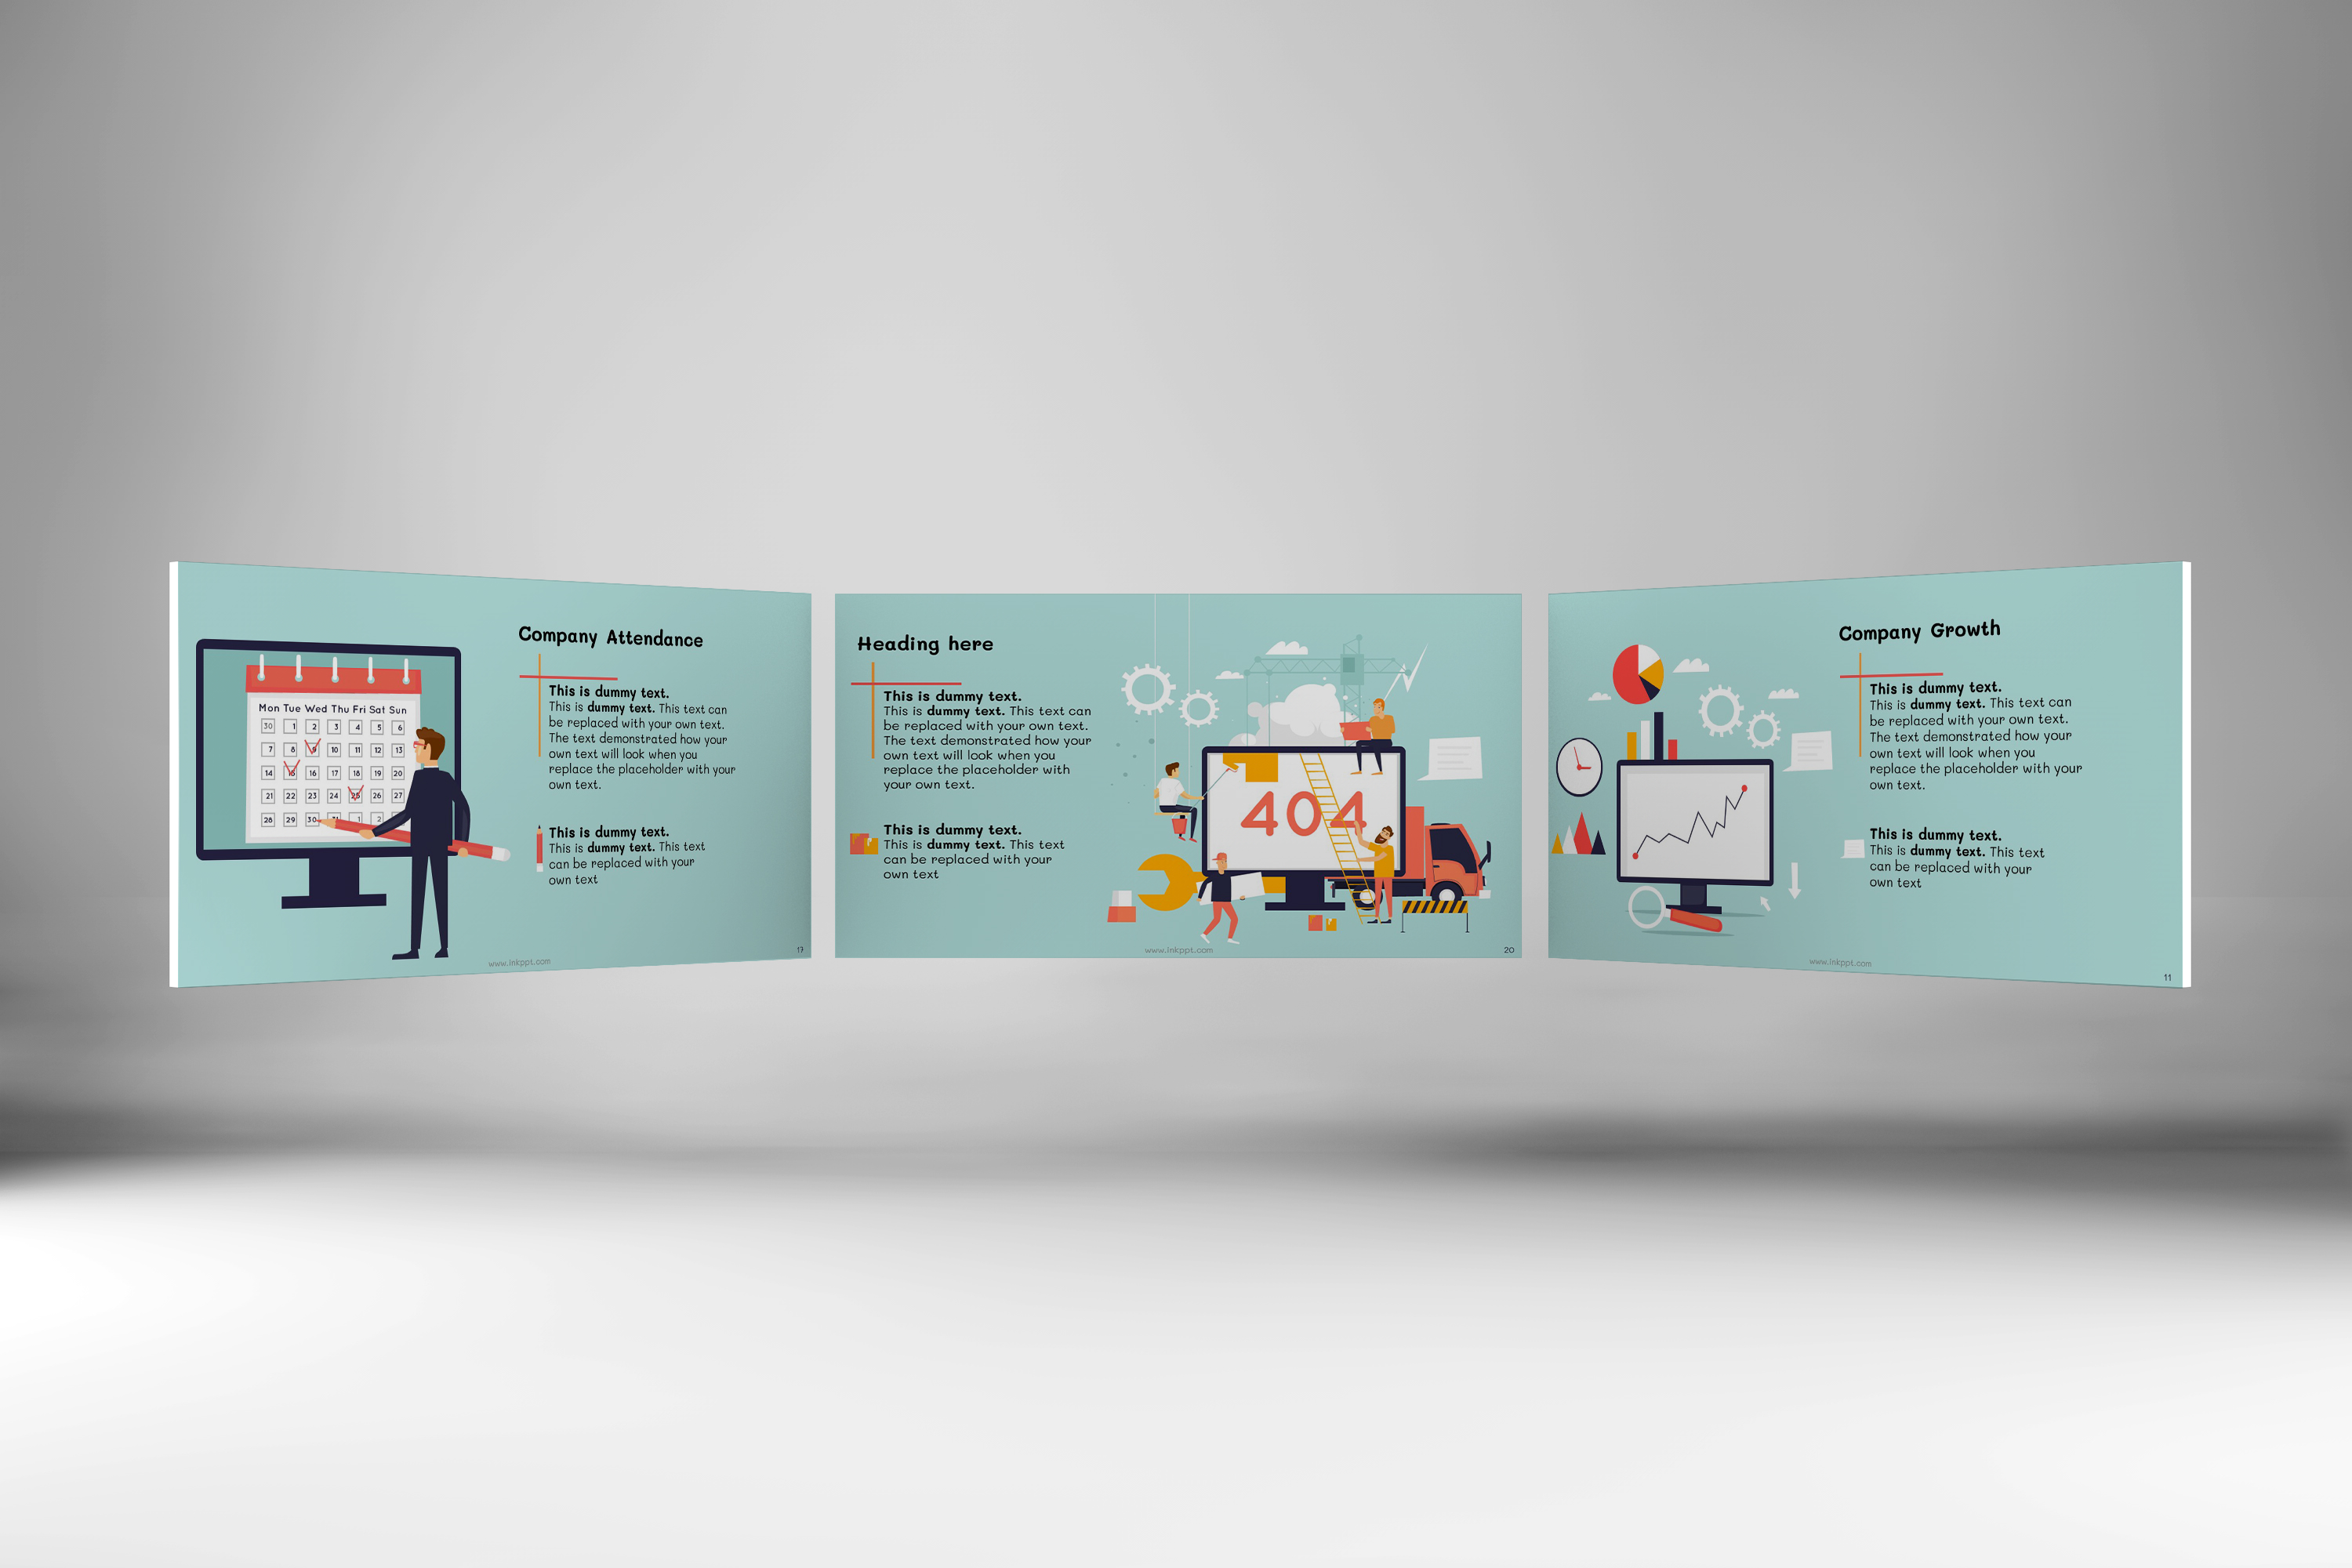 Corporate Functions PowerPoint Template example image 2